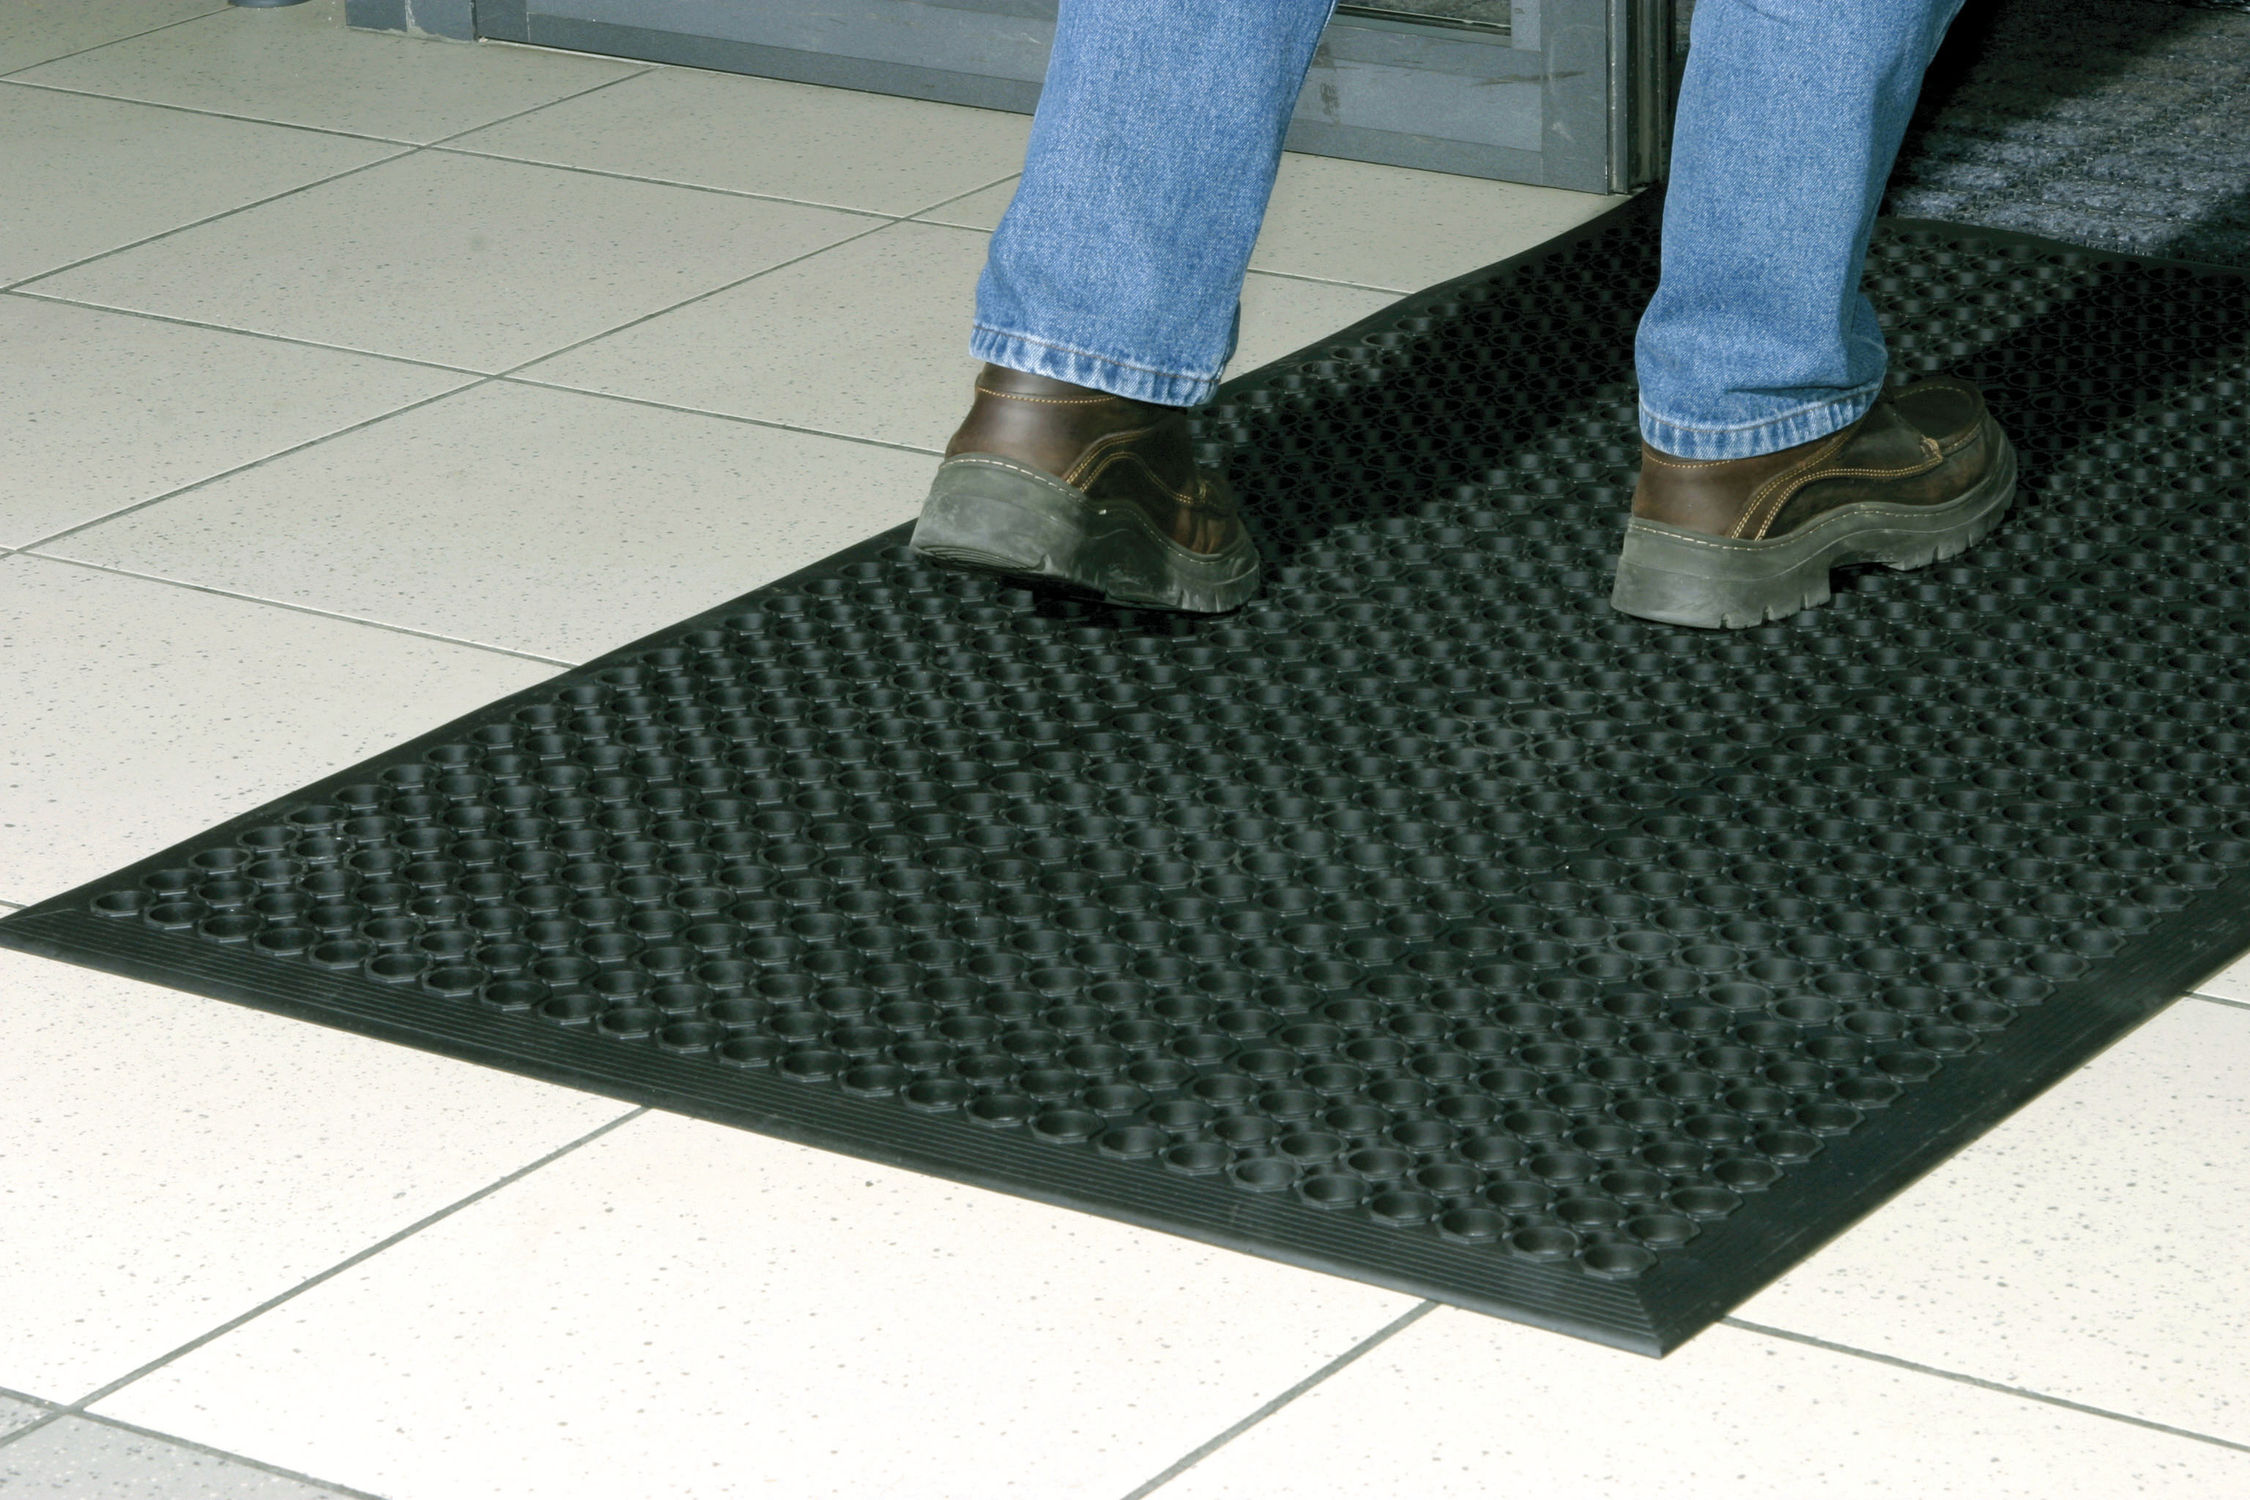 Rubber Grating Nonslip M MPR IDS - Rubber grate flooring